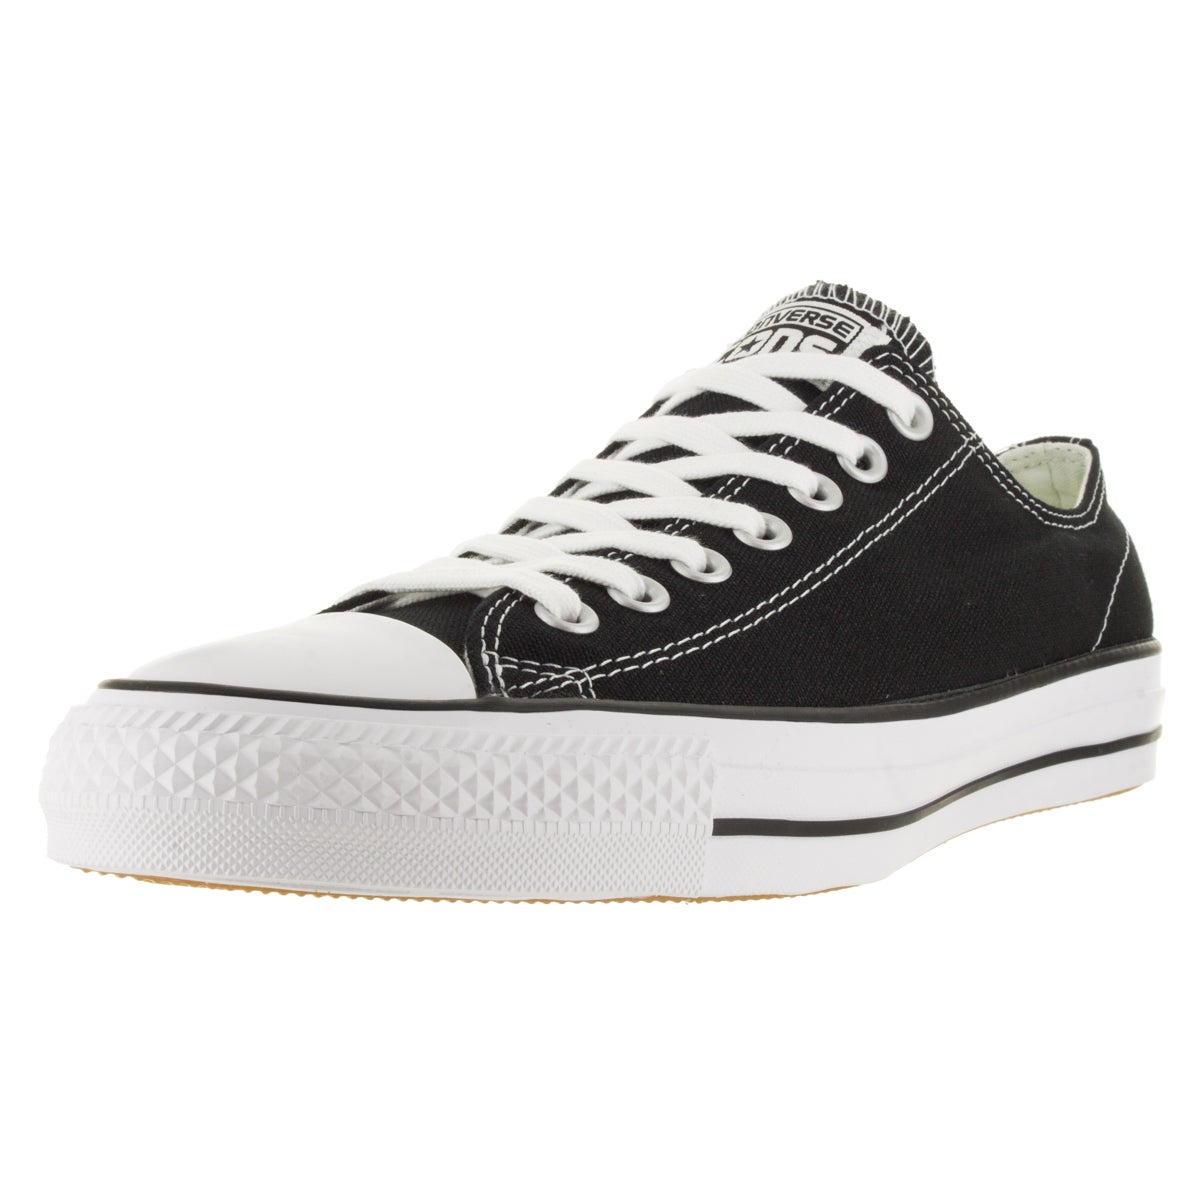 450a57c6f40c1 Converse Unisex Chuck Taylor All Star Pro Ox Black/White Skate Shoe